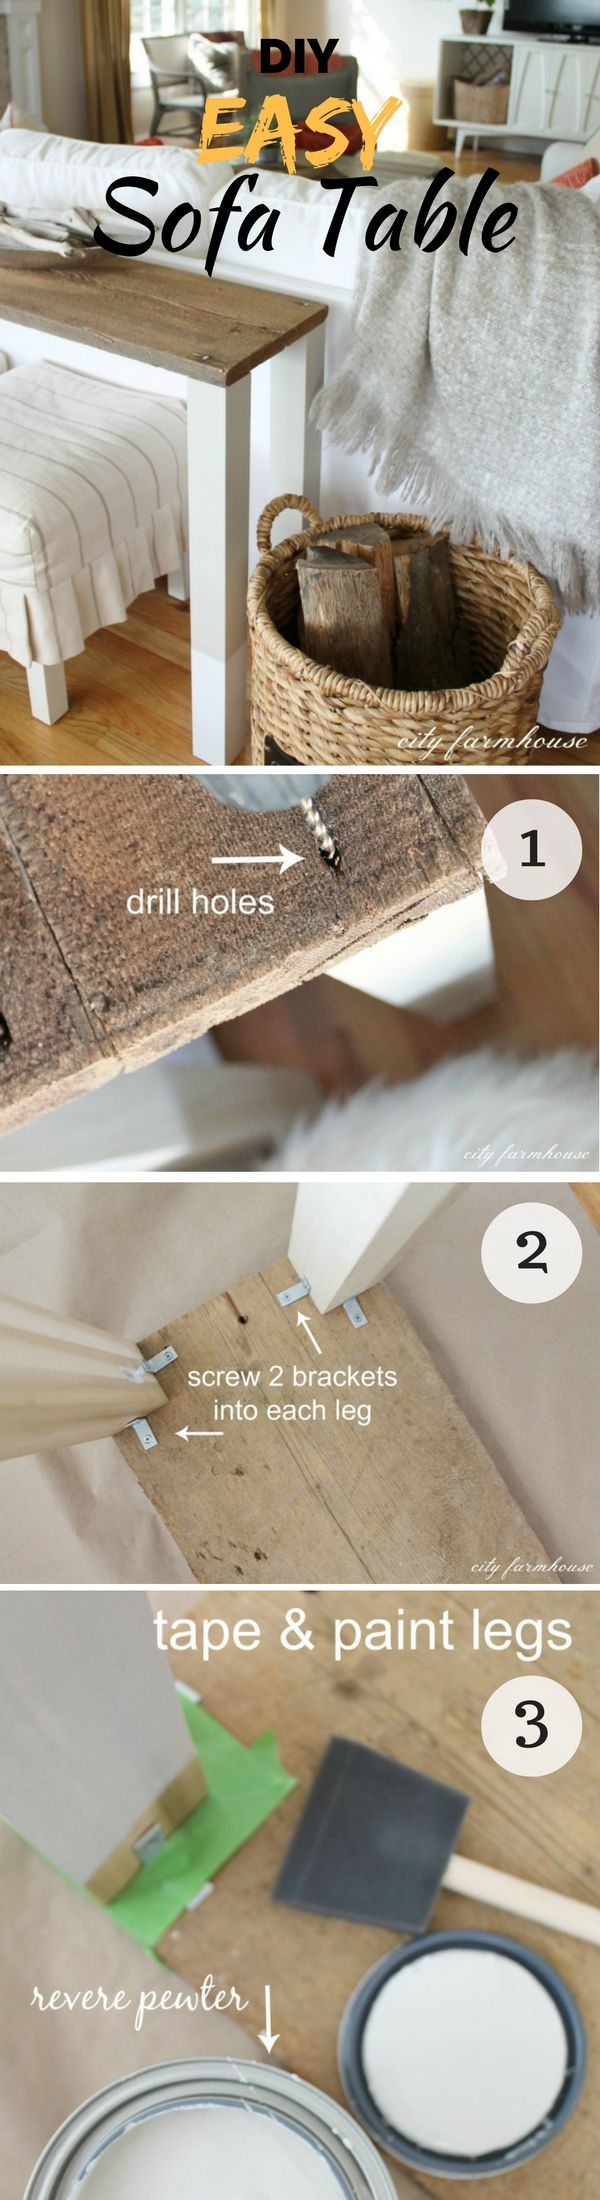 Check out how to make this easy DIY sofa table form reclaimed wood @istandarddesign